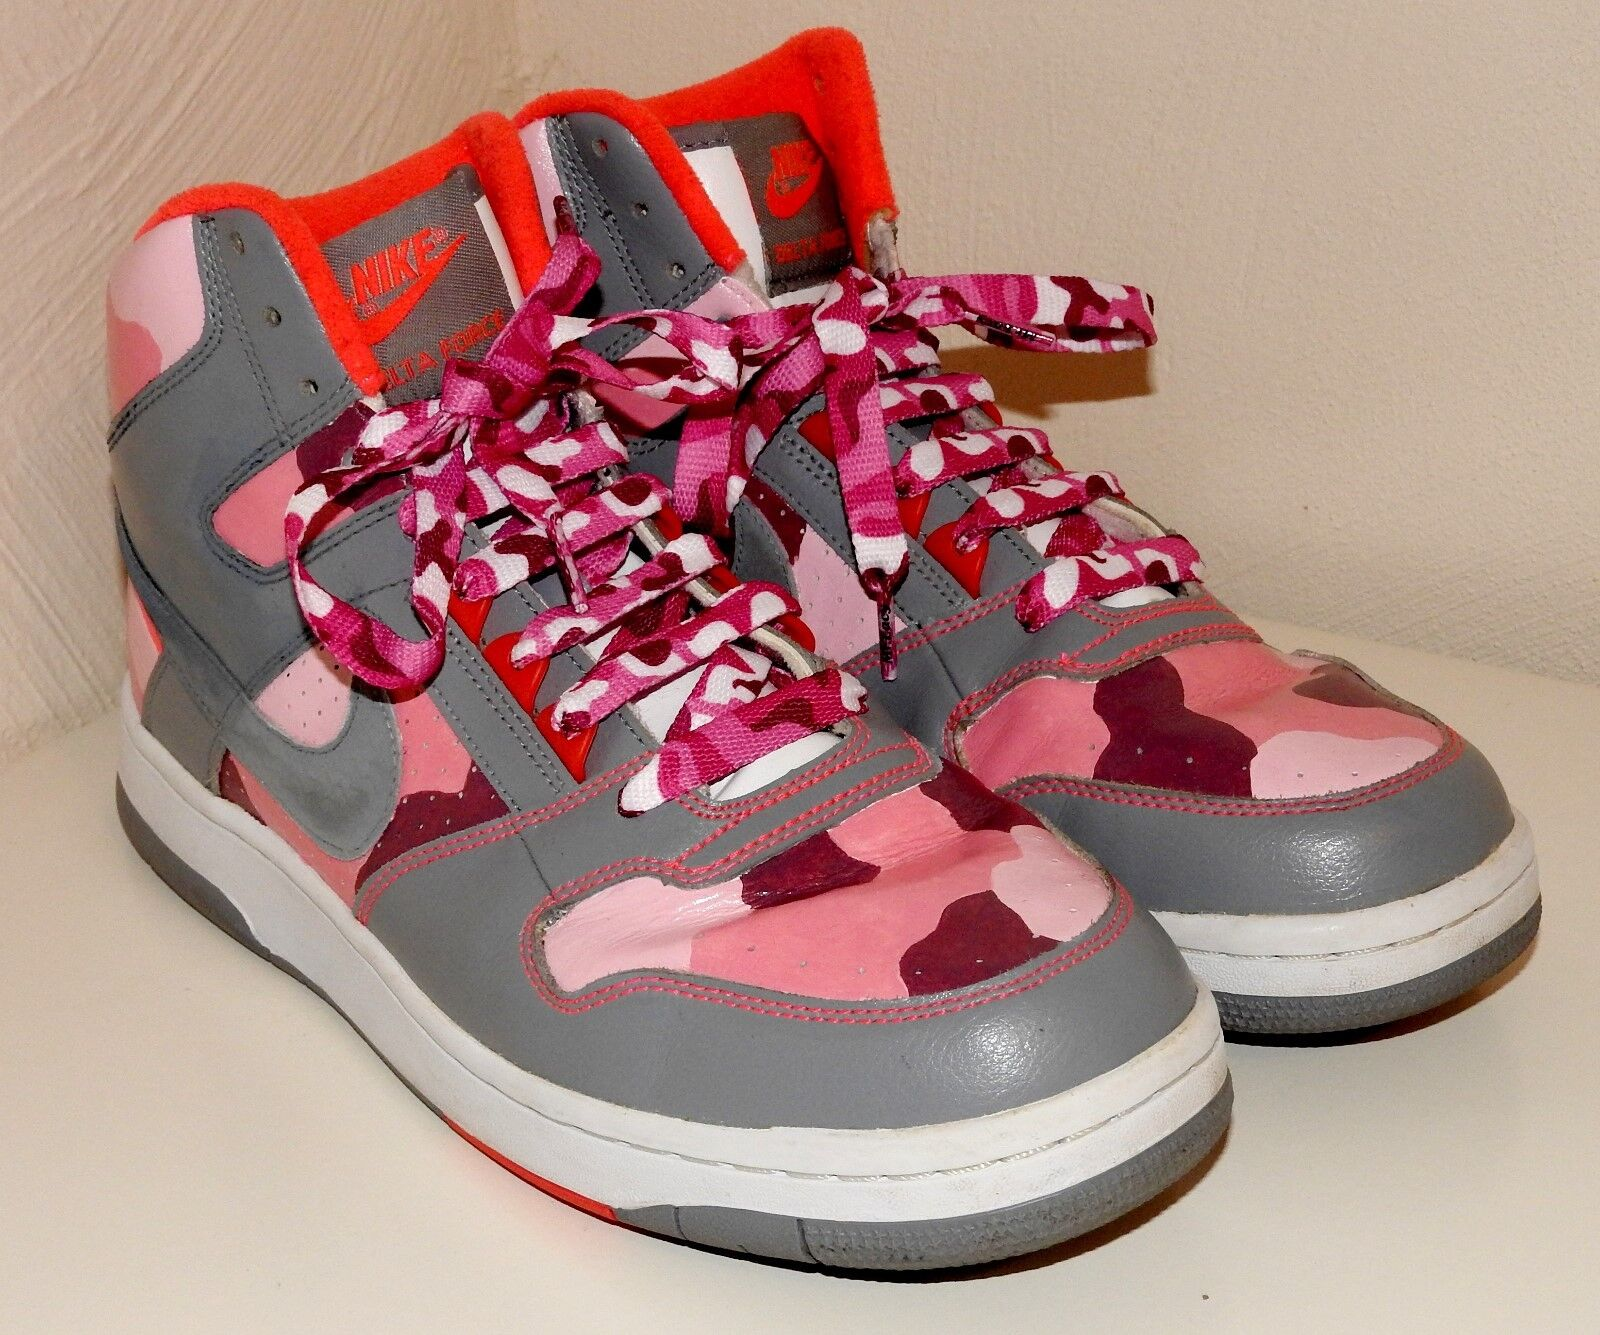 Pink Camo Nike Delta Force unique hand-painted Trainers sneakers camouflage